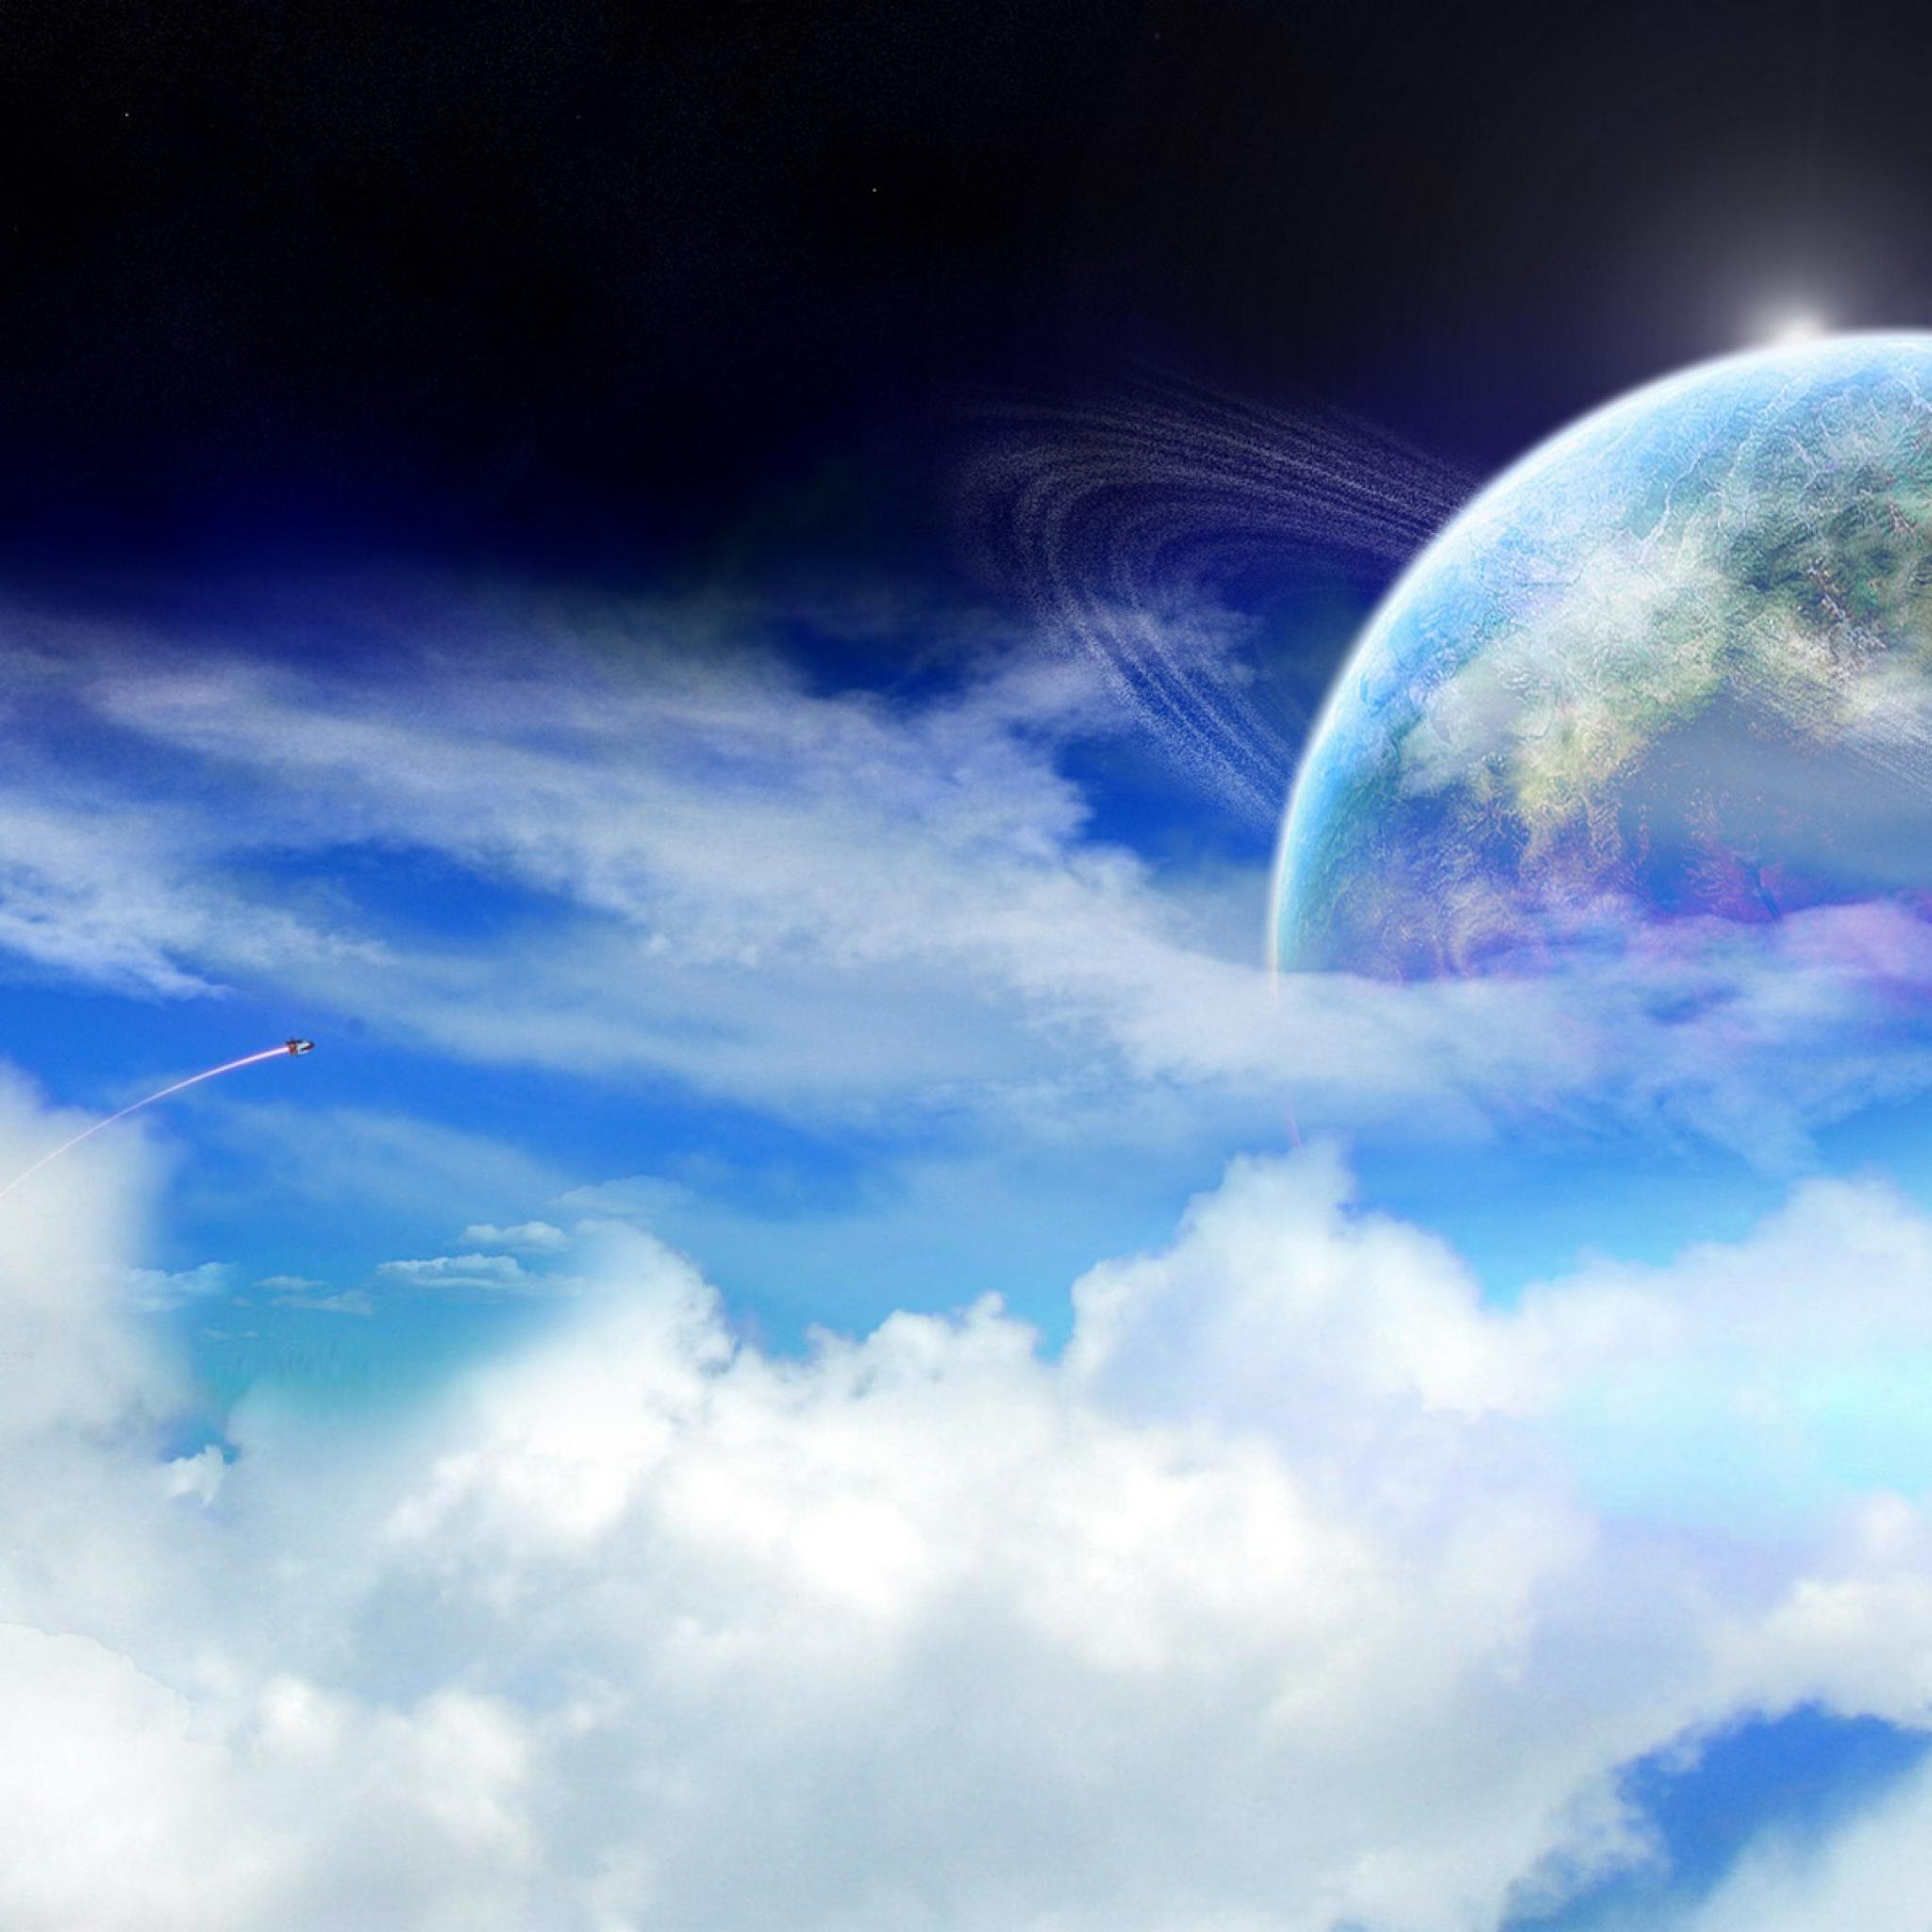 Planet-of-the-Ring-Cloud-3Wallpapers-iPad-Retina